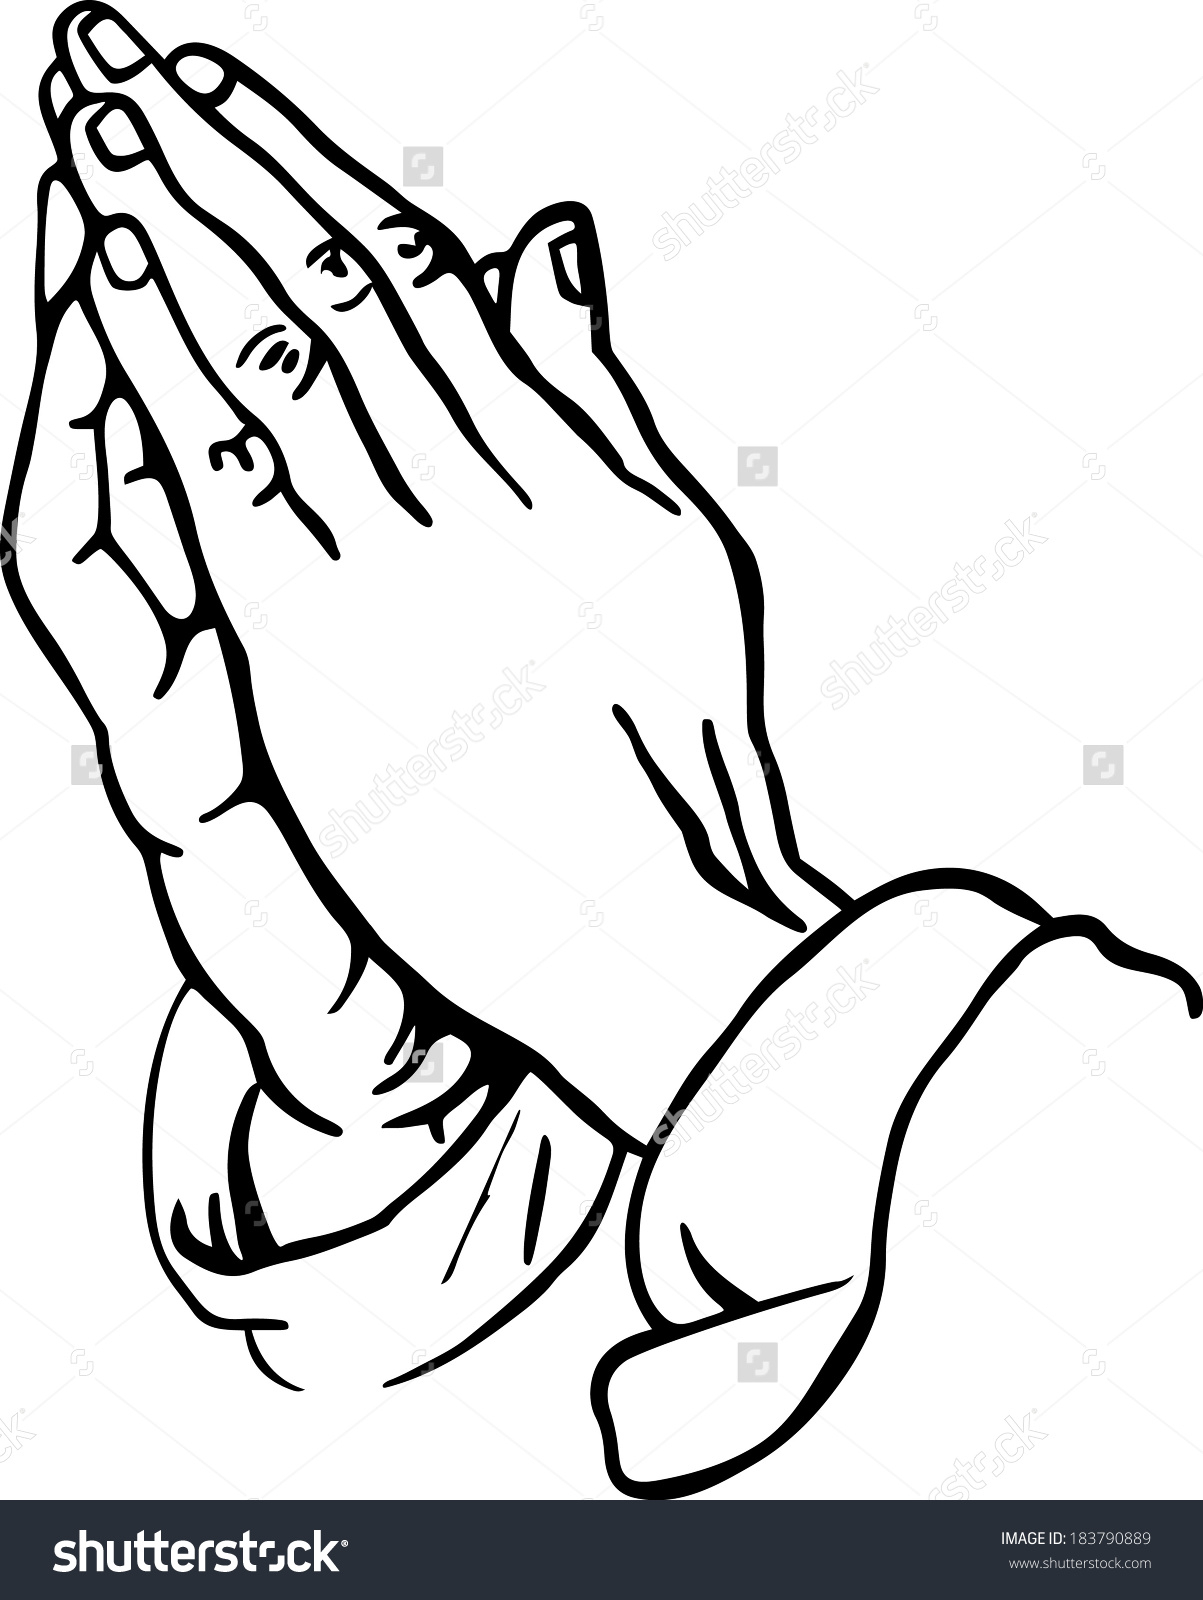 1203x1600 Praying Hands Drawing Tutorial How To Draw Praying Hands Tattoo